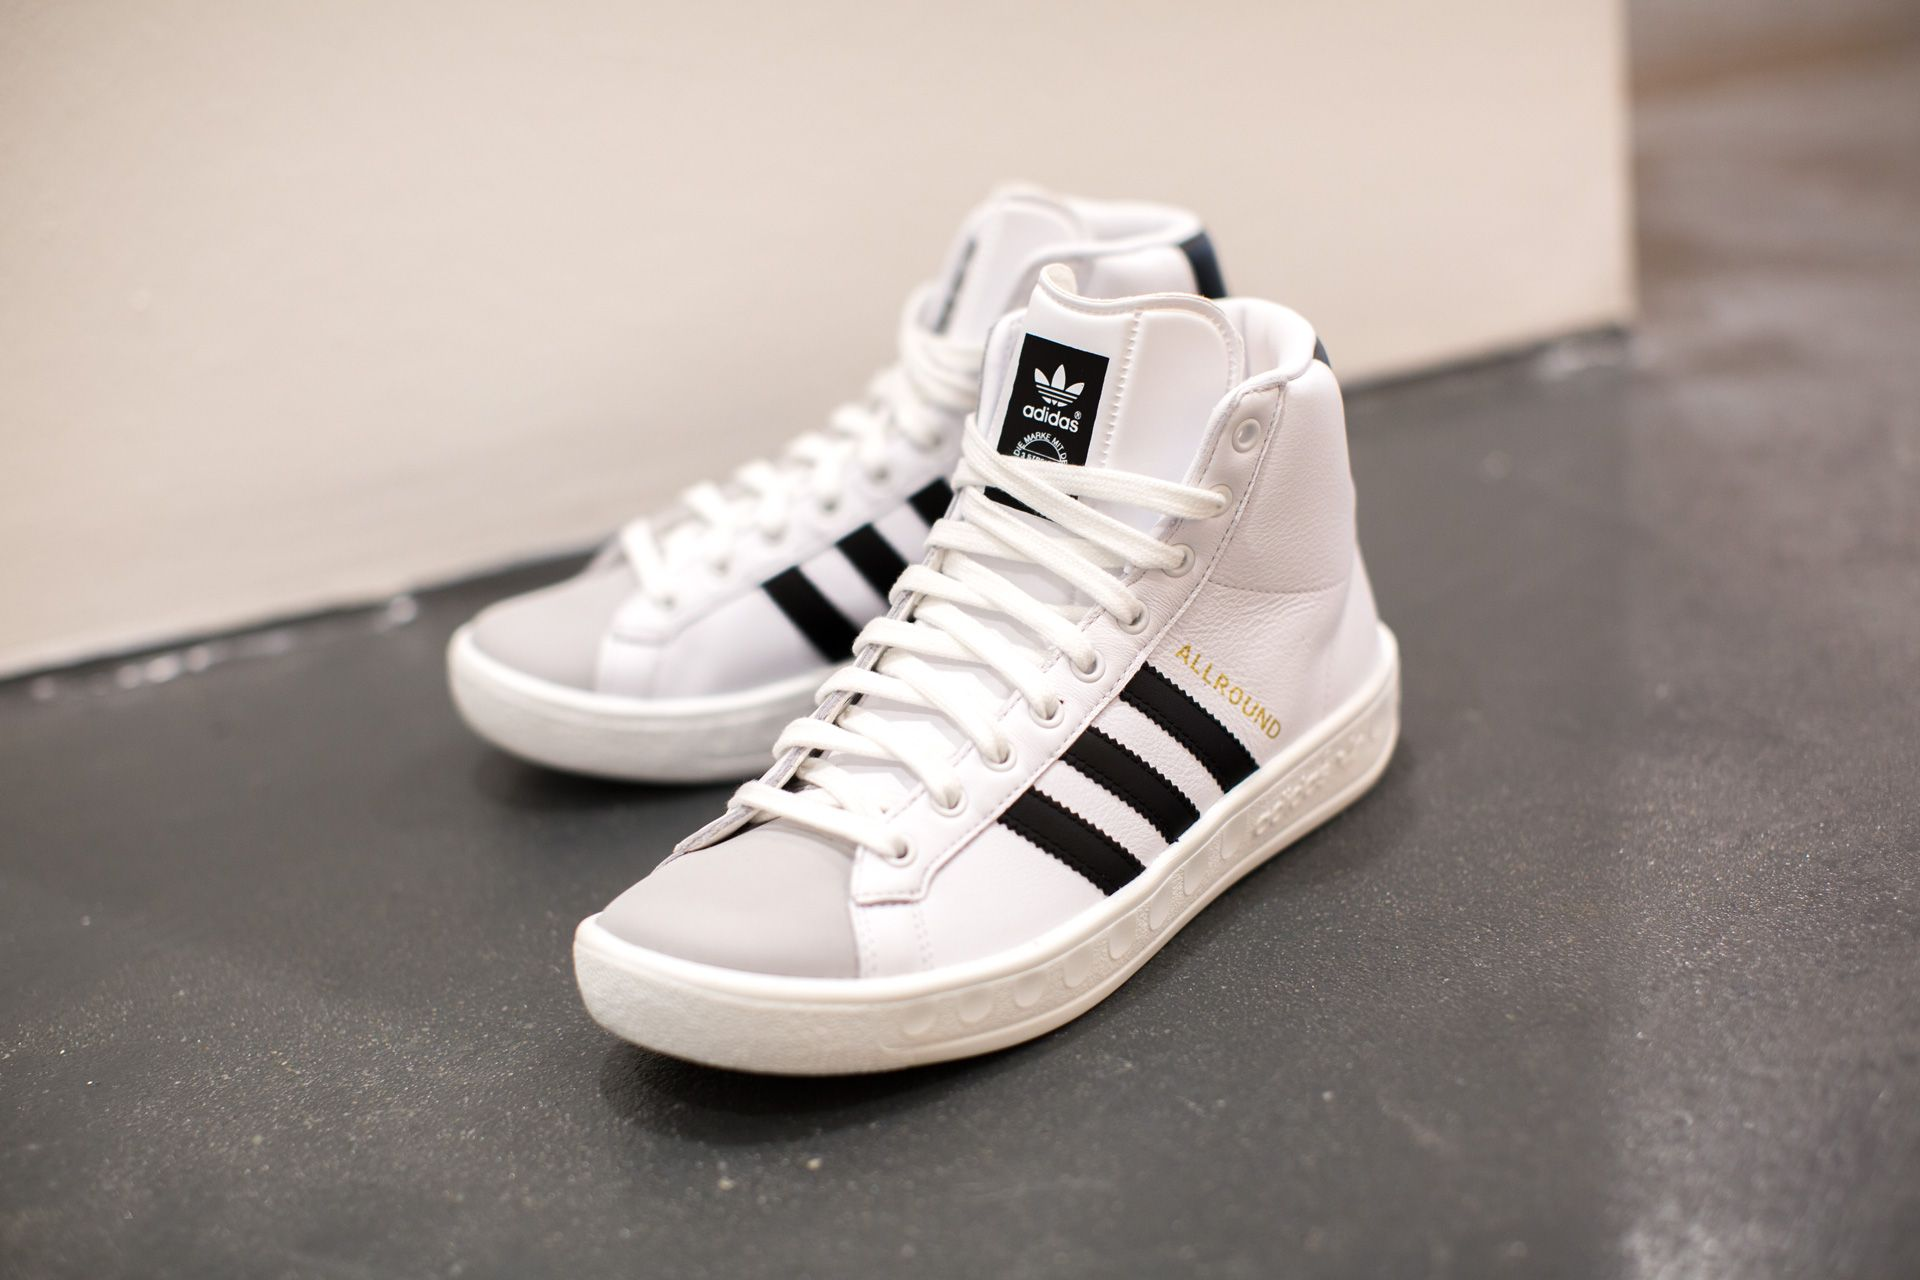 ADIDAS ORIGINALS ALLROUND OG FTWWHT/CBLACK/CLGREY available ...